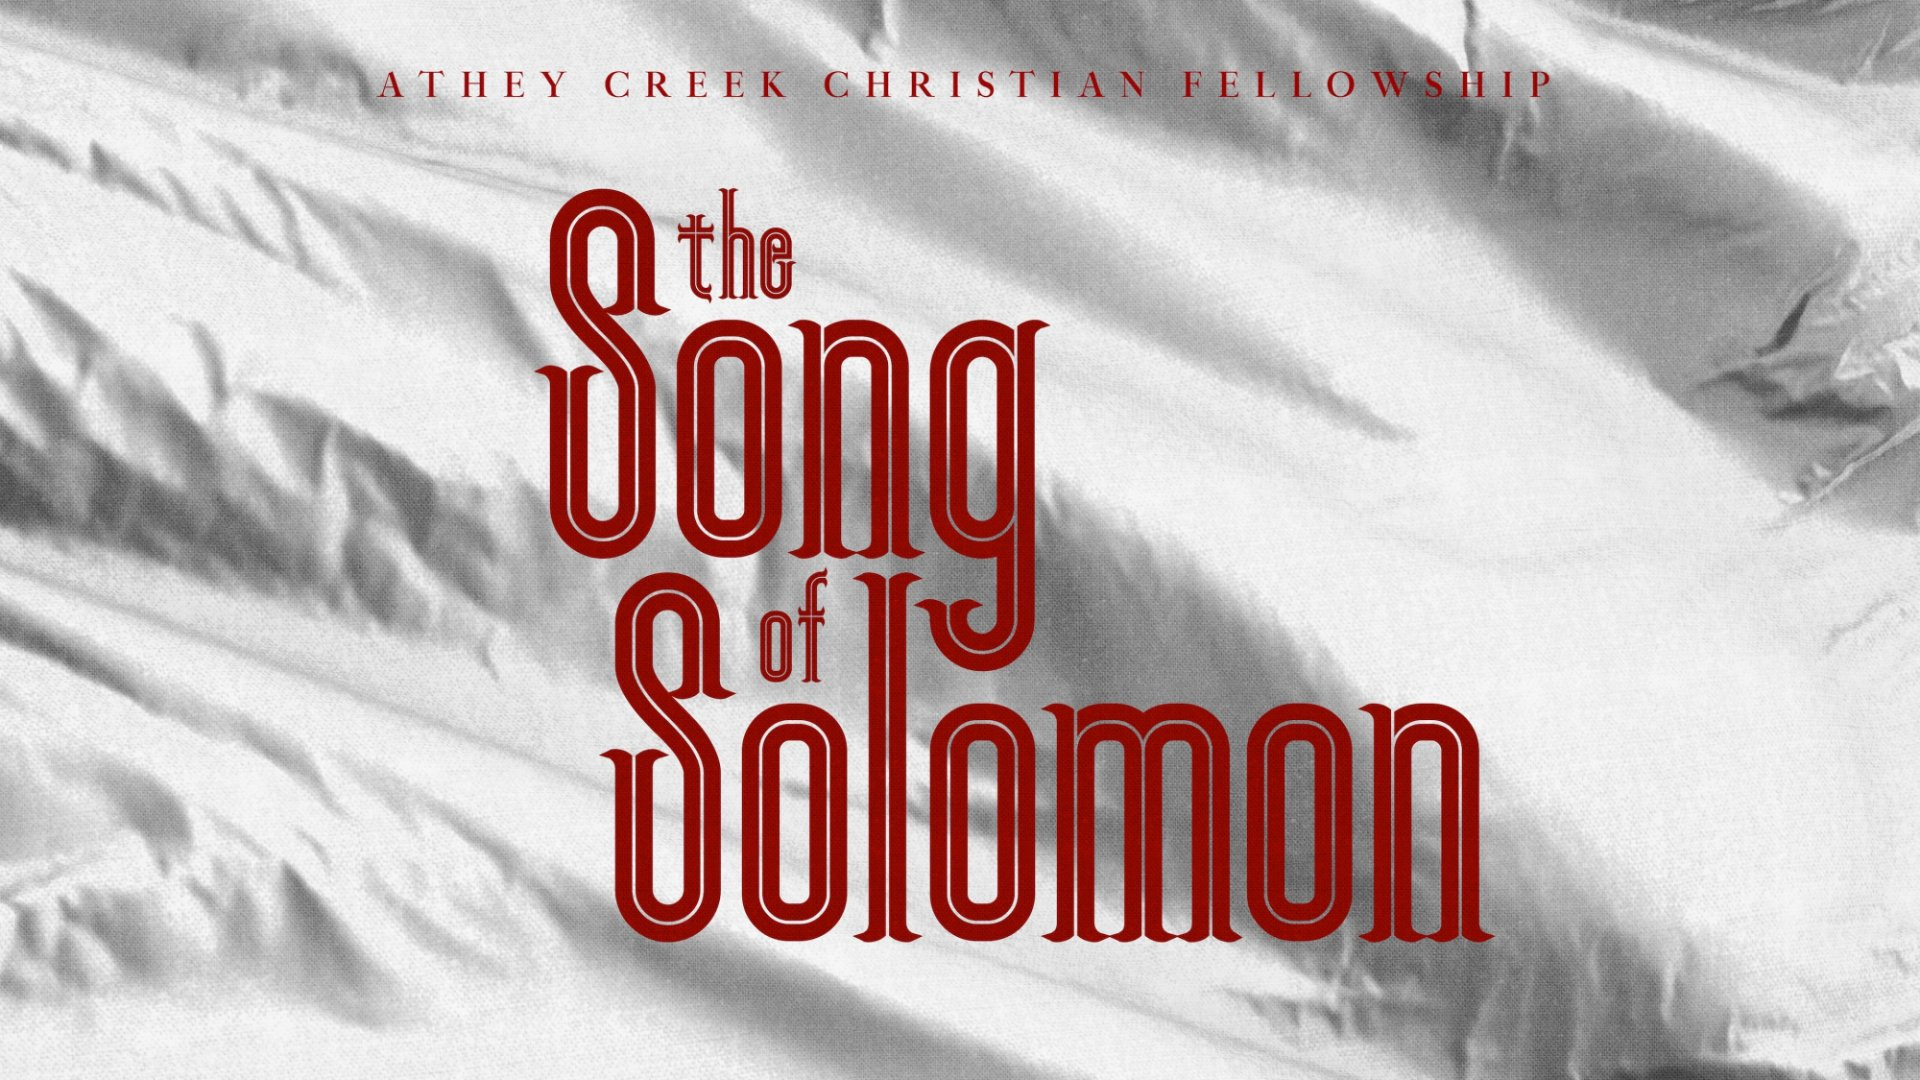 Teaching artwork for Song of Solomon